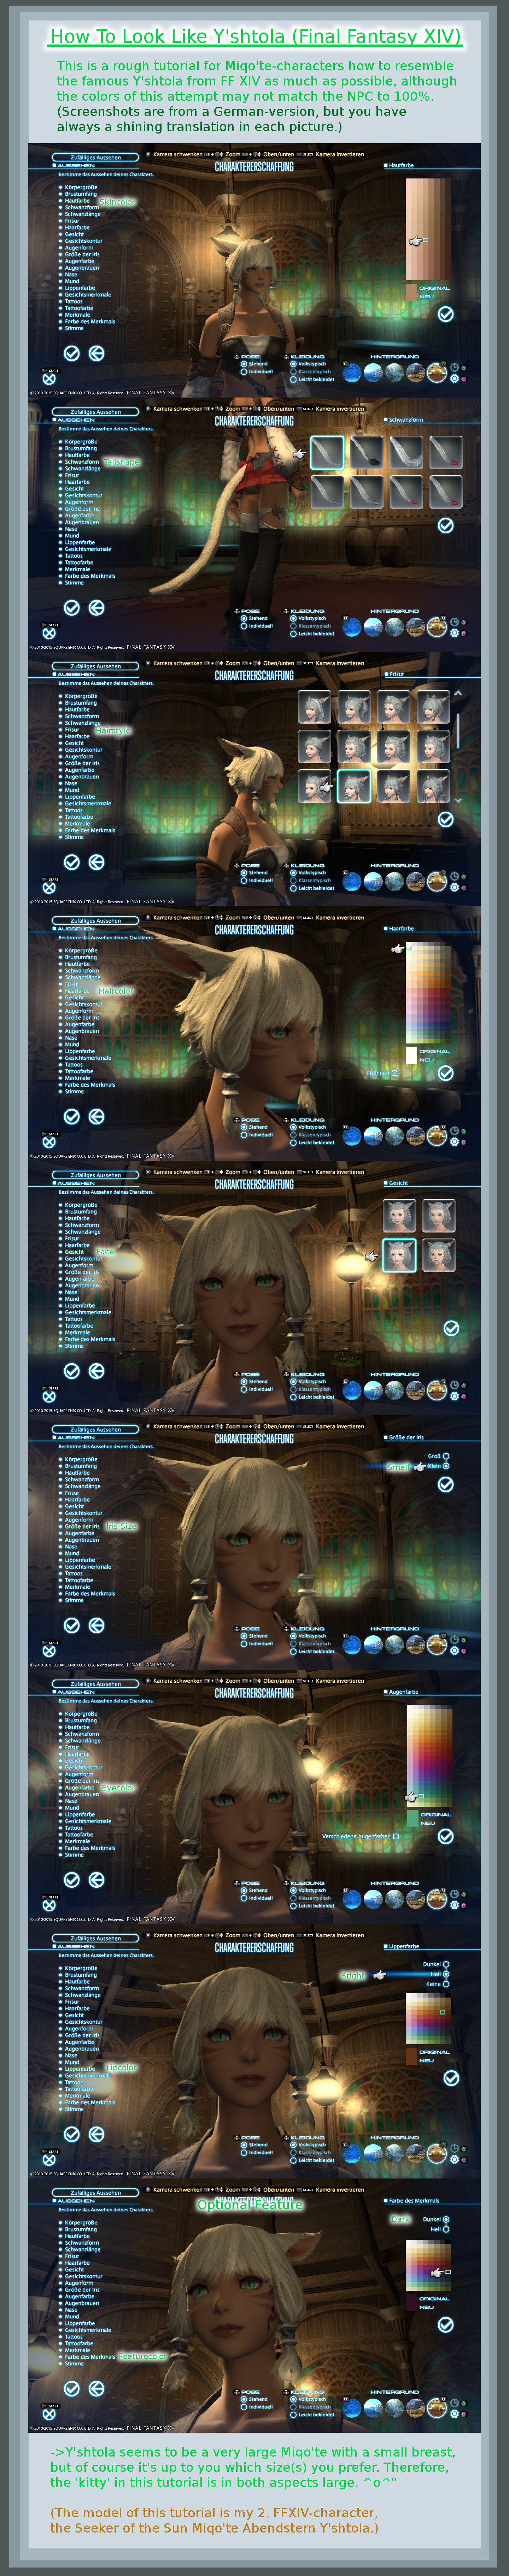 FF XIV Tutorial How to look like Y'shtola by MelodyCrystel on DeviantArt